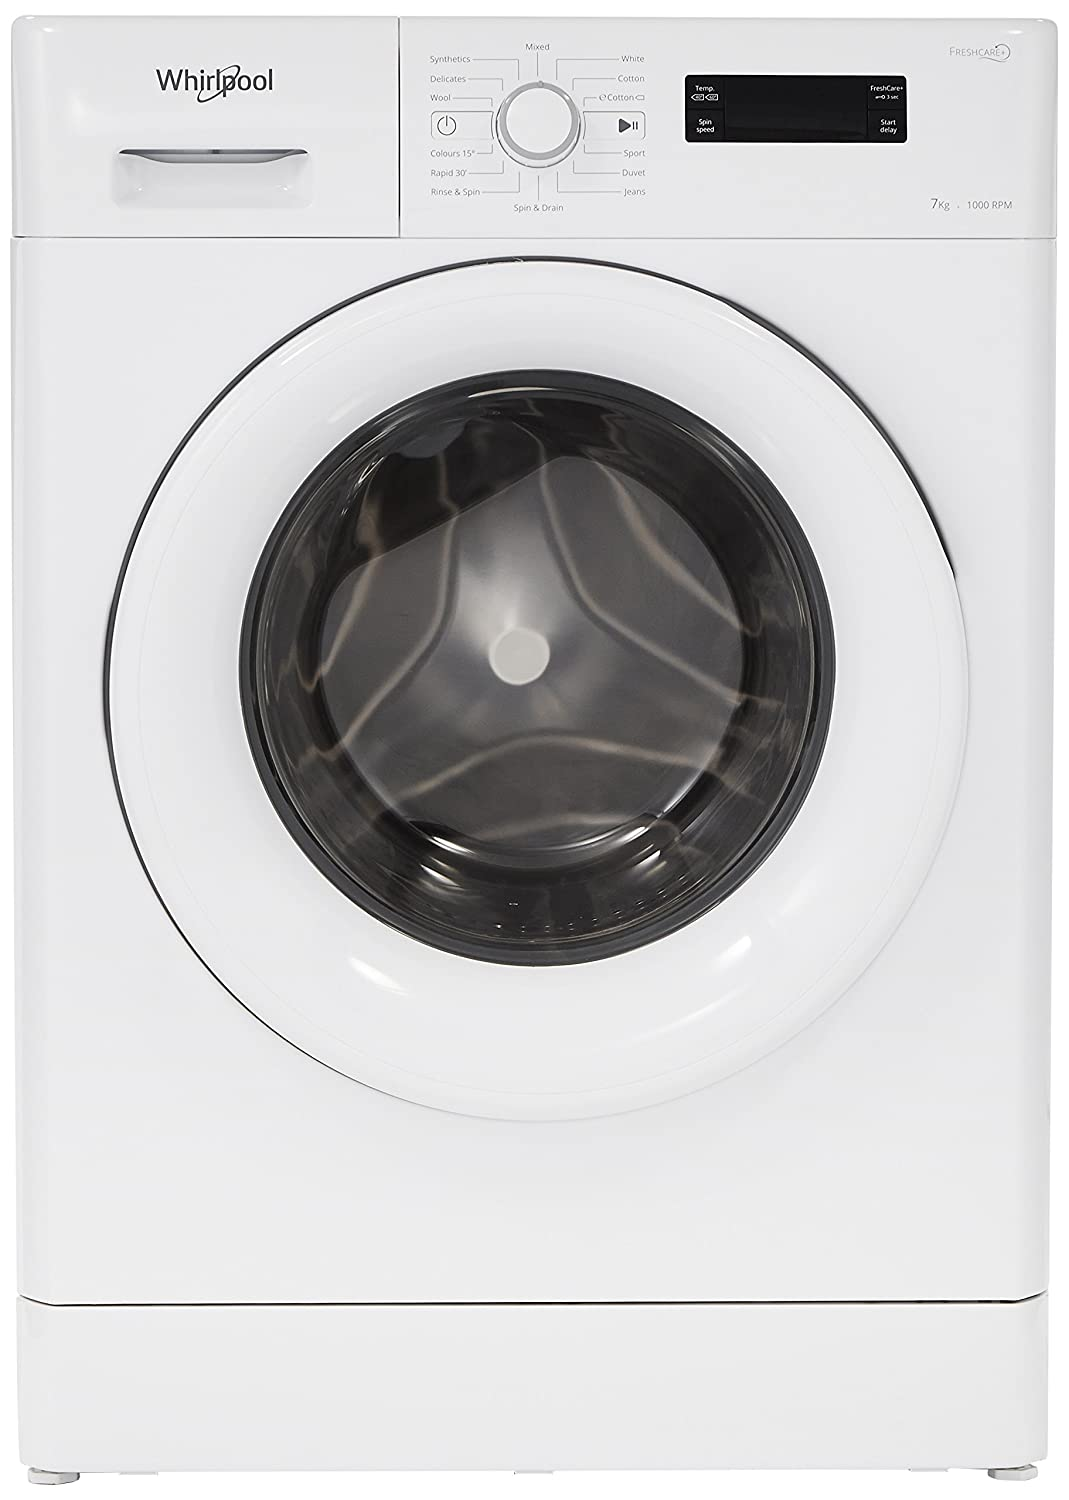 bfdb1e98adfb7 Whirlpool 7 kg Fully-Automatic Front Loading Washing Machine (Fresh Care  7110